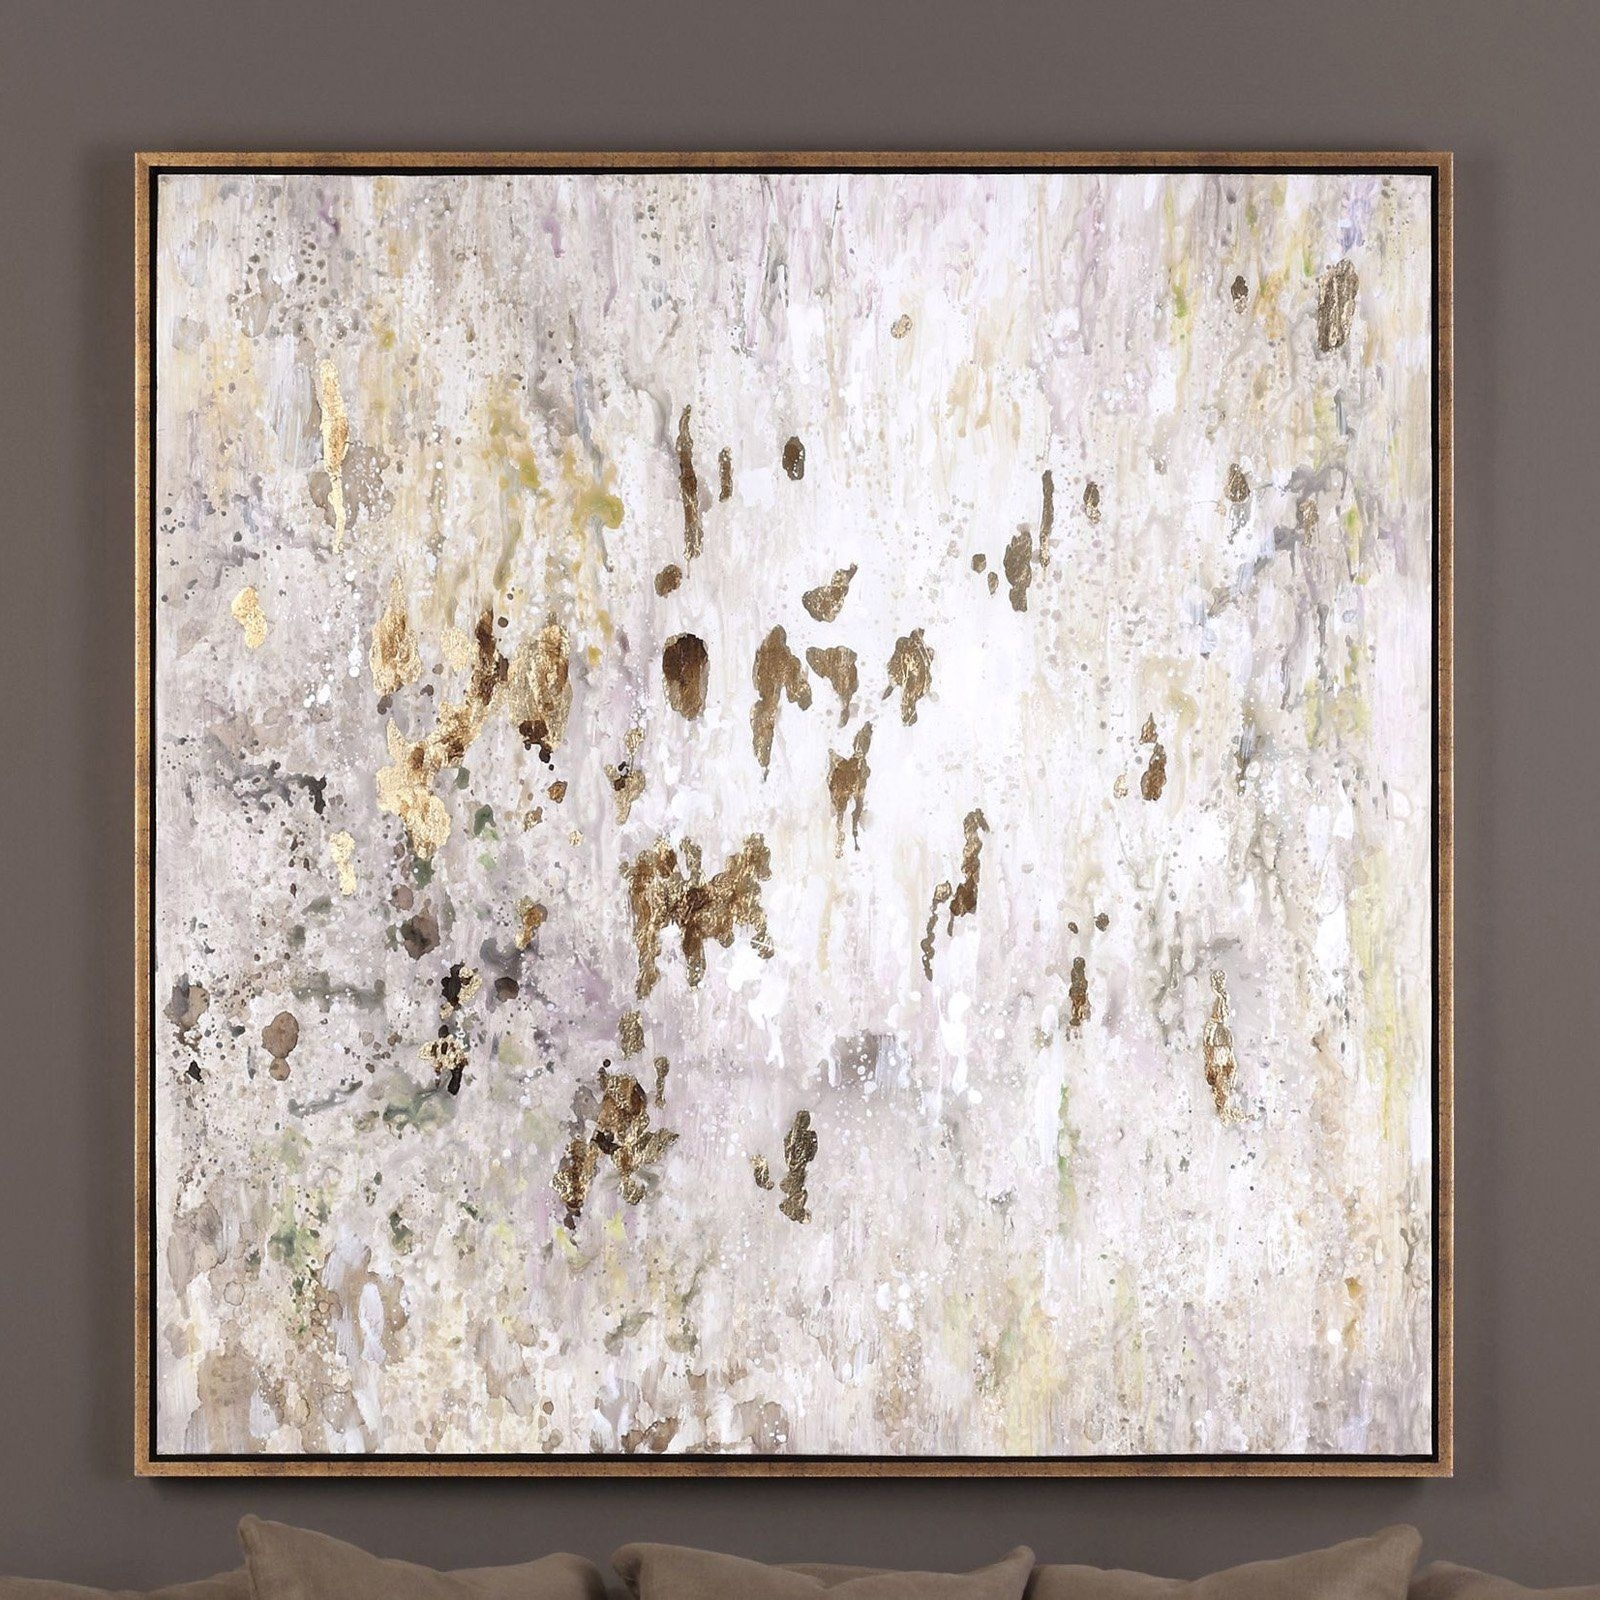 Uttermost Golden Raindrops Wall Art | From Hayneedle In Recent Uttermost Wall Art (View 13 of 20)